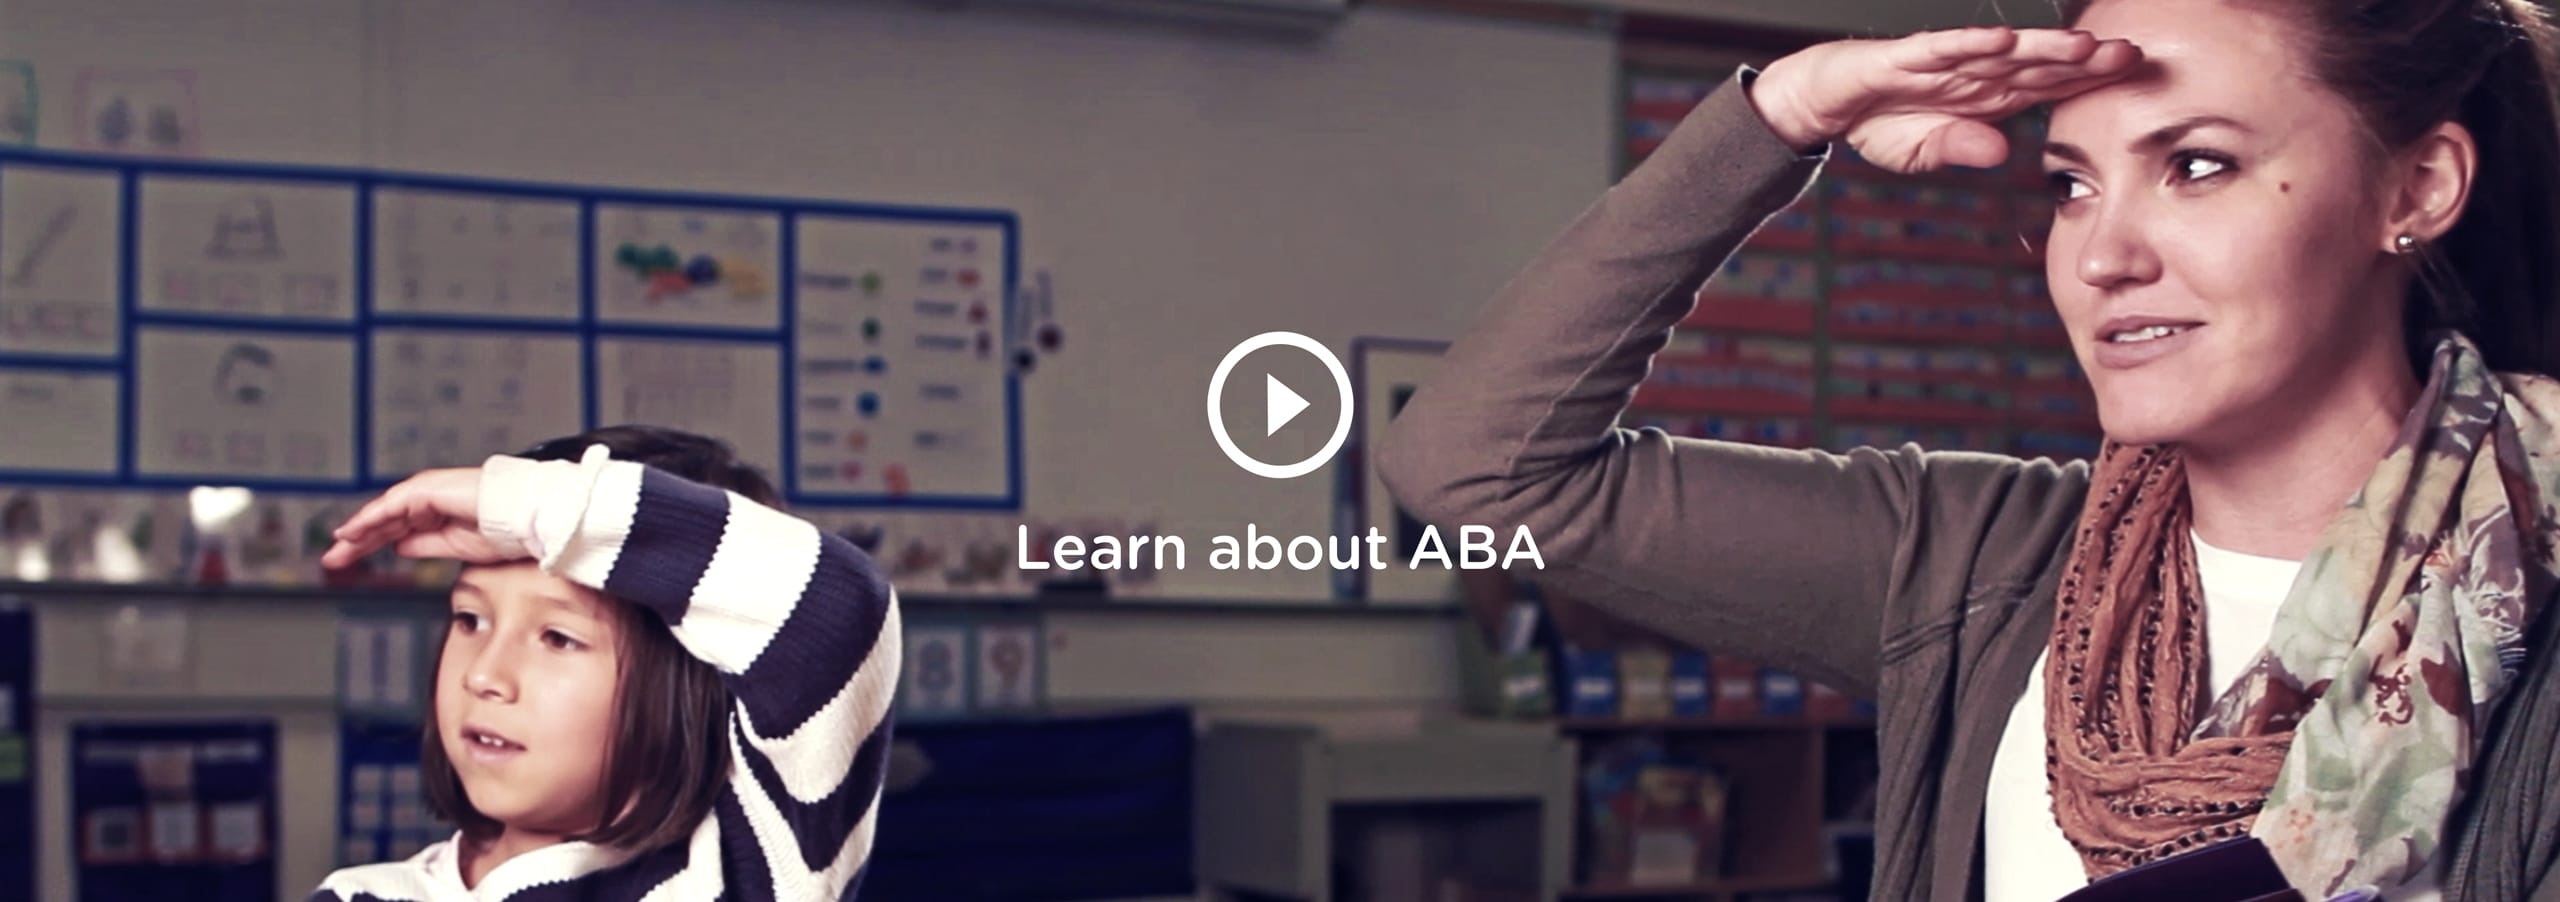 Learn about ABA